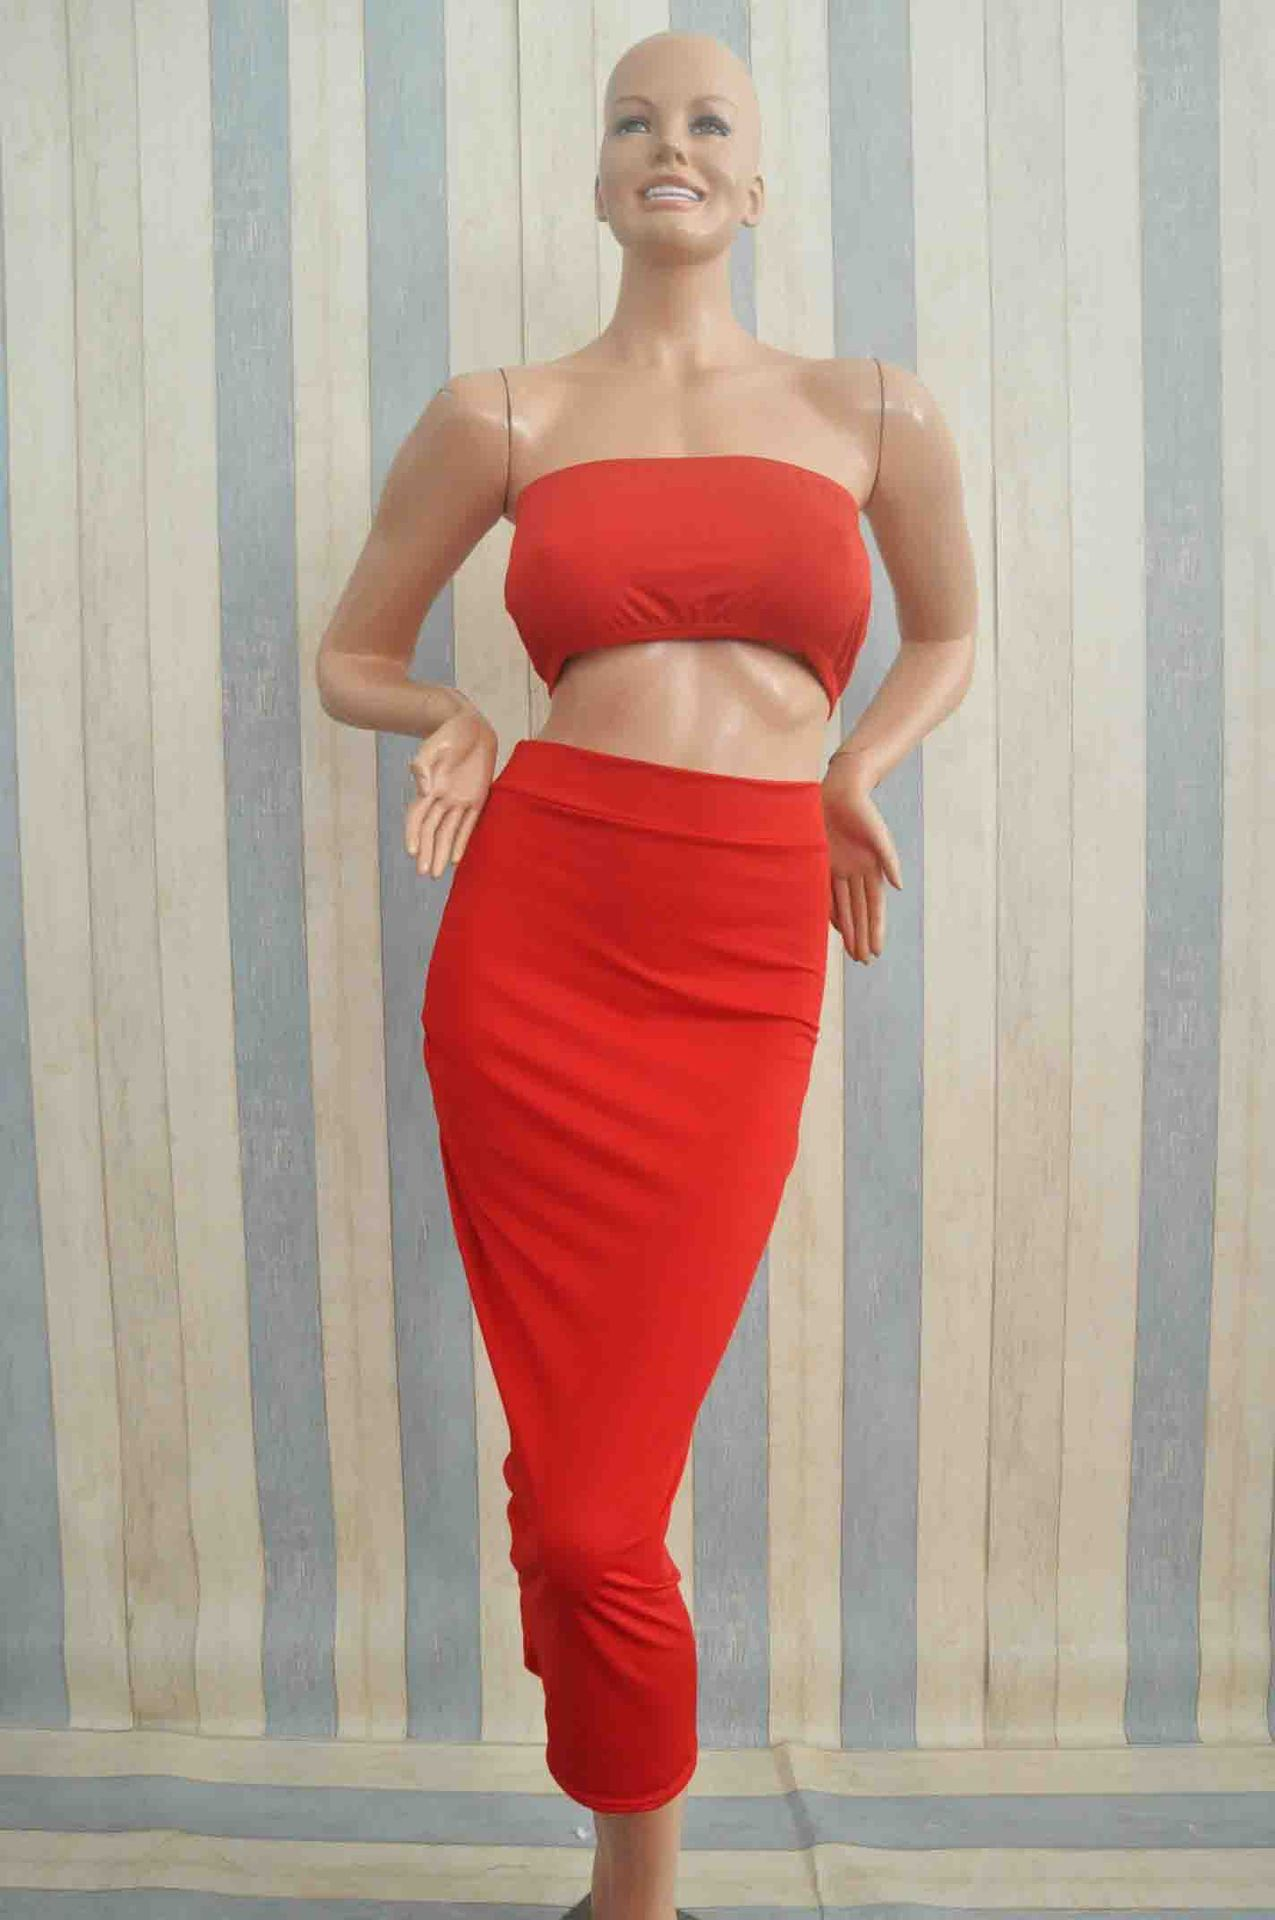 Women Cute Red Crop Top And Skirt Set - Online Store For Women Sexy Dresses-1593